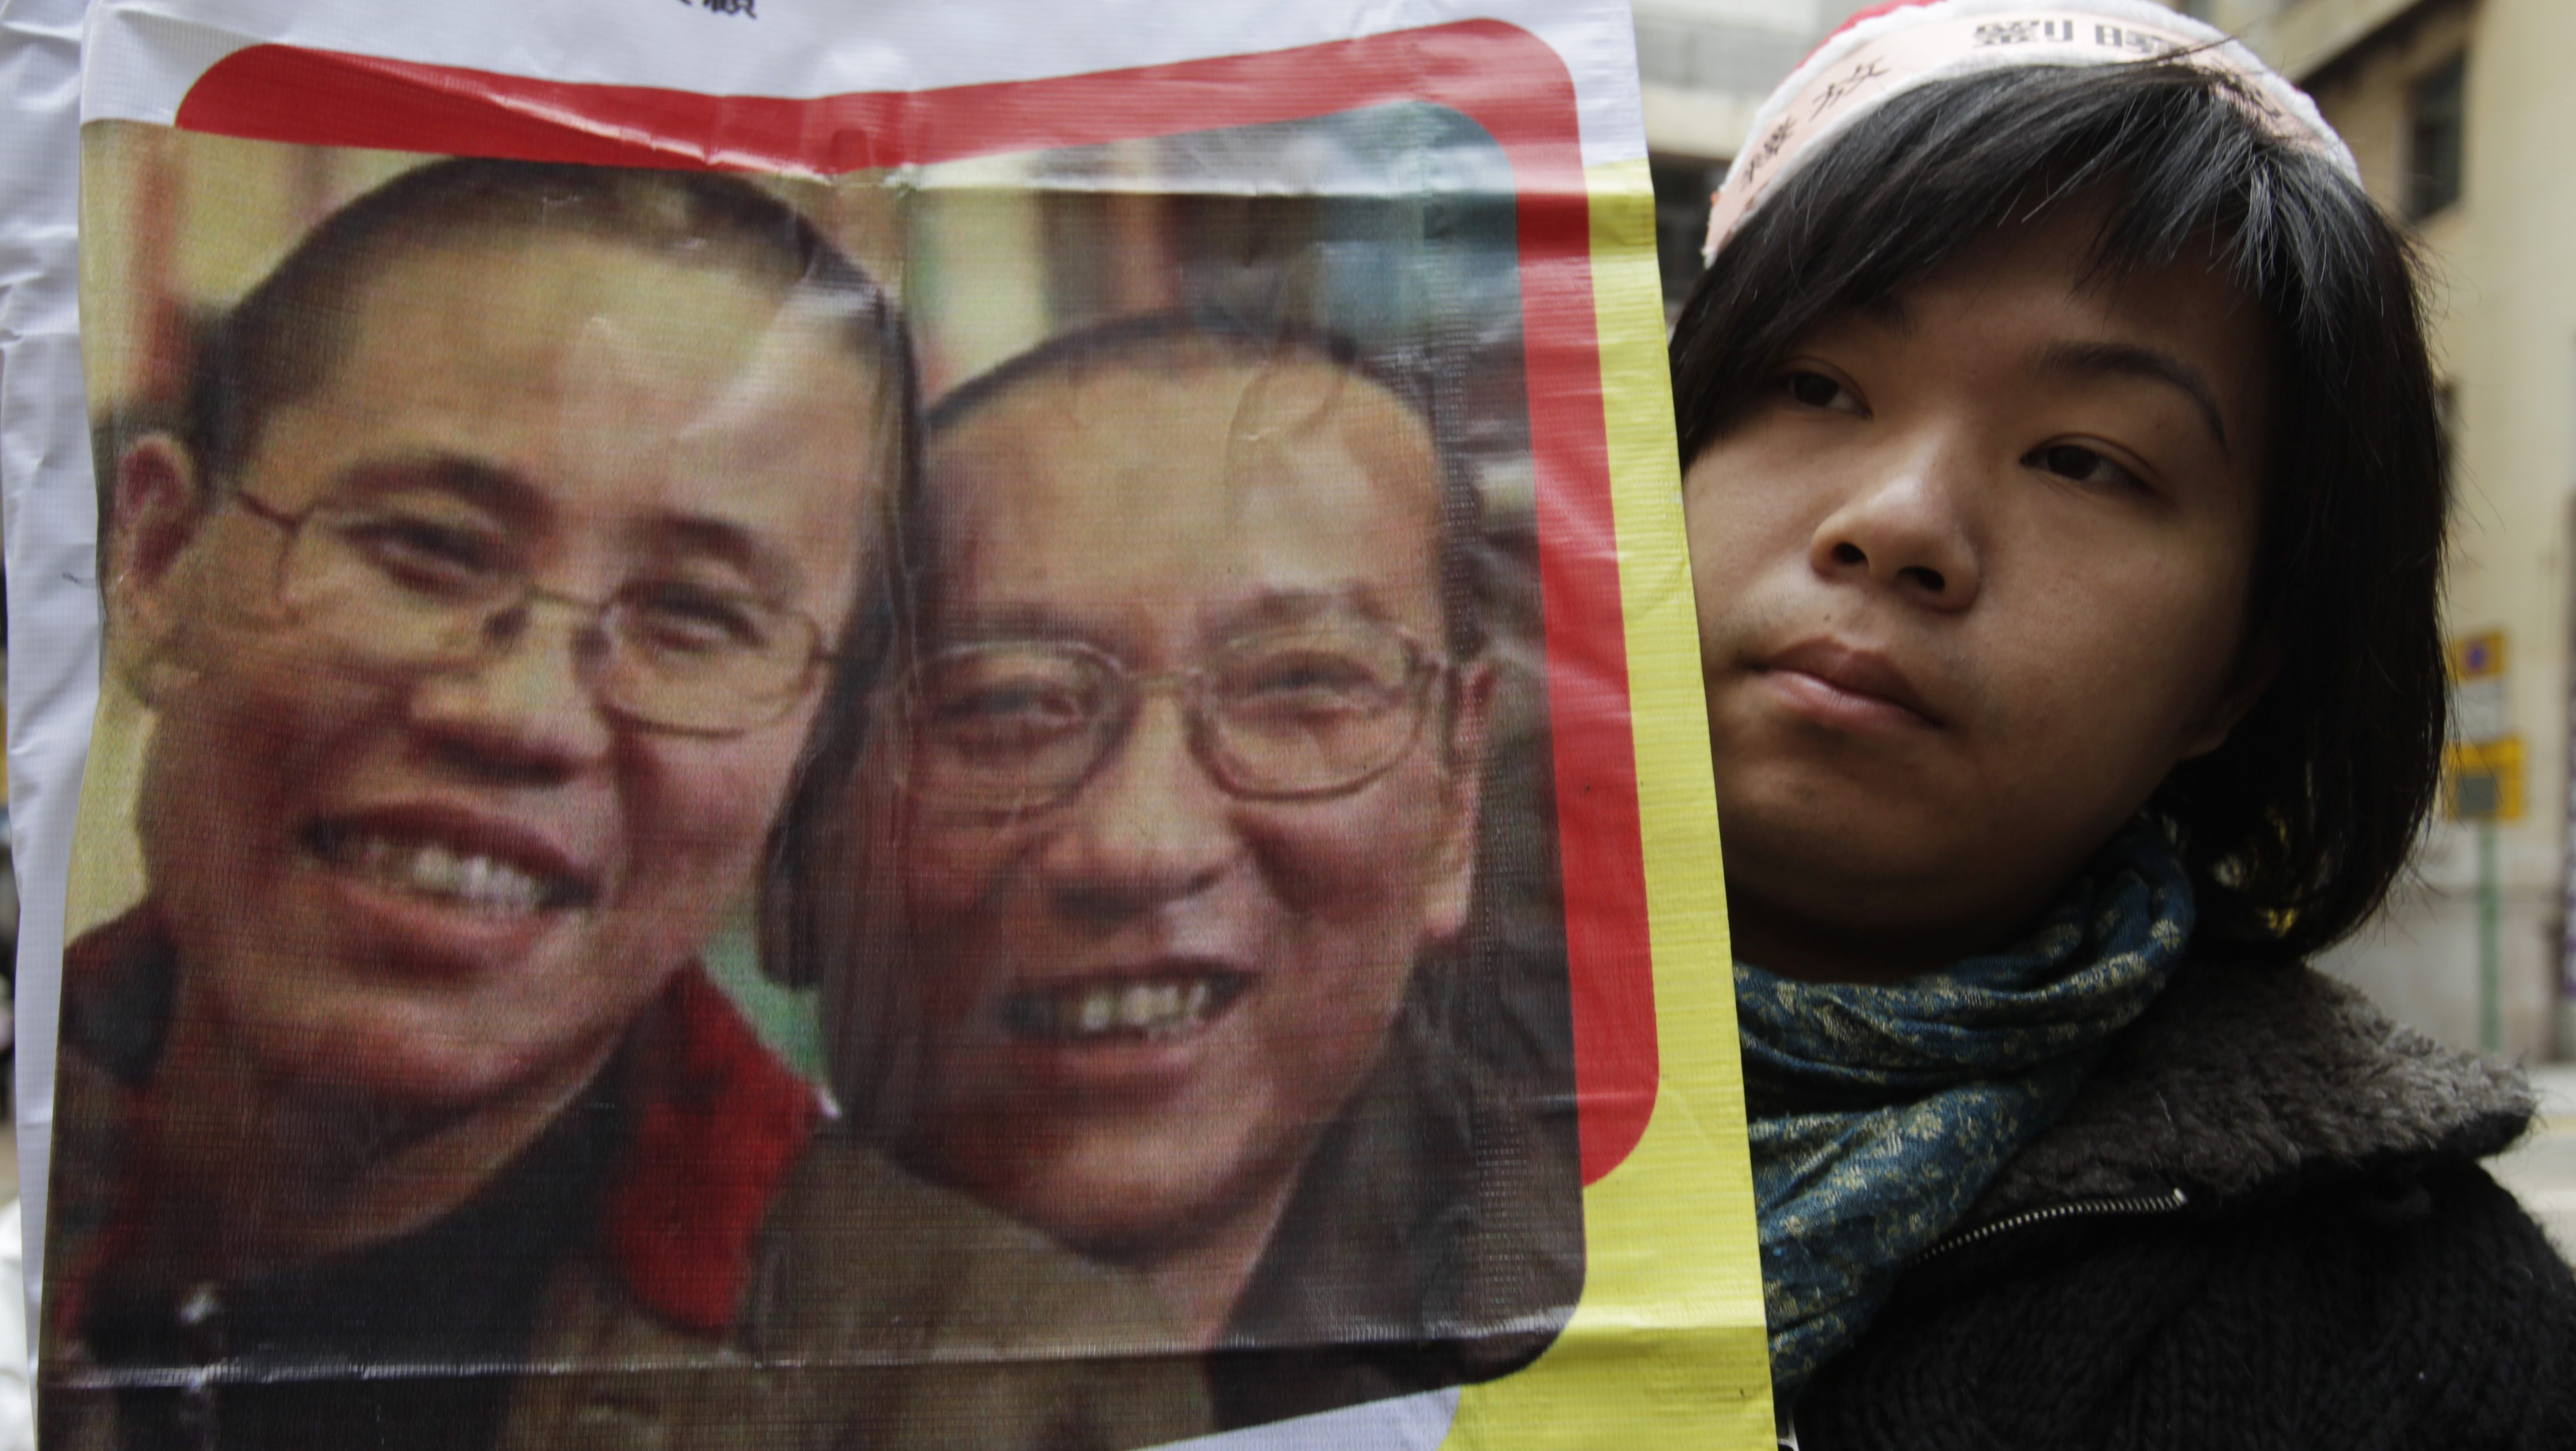 A pro-democracy protester holds a placard with picture of jailed Noble Peace Prize winner, Liu Xiaobo and his wife Liu Xia during a protest demanding China's government the release of Liu Xiaobo, outside the 'Chinese Liaison office in Hong Kong' in Hong Kong, China 25 December 2010. Lau was jailed for 11 years in 2009 on subversion charges.  EPA/YM YIK